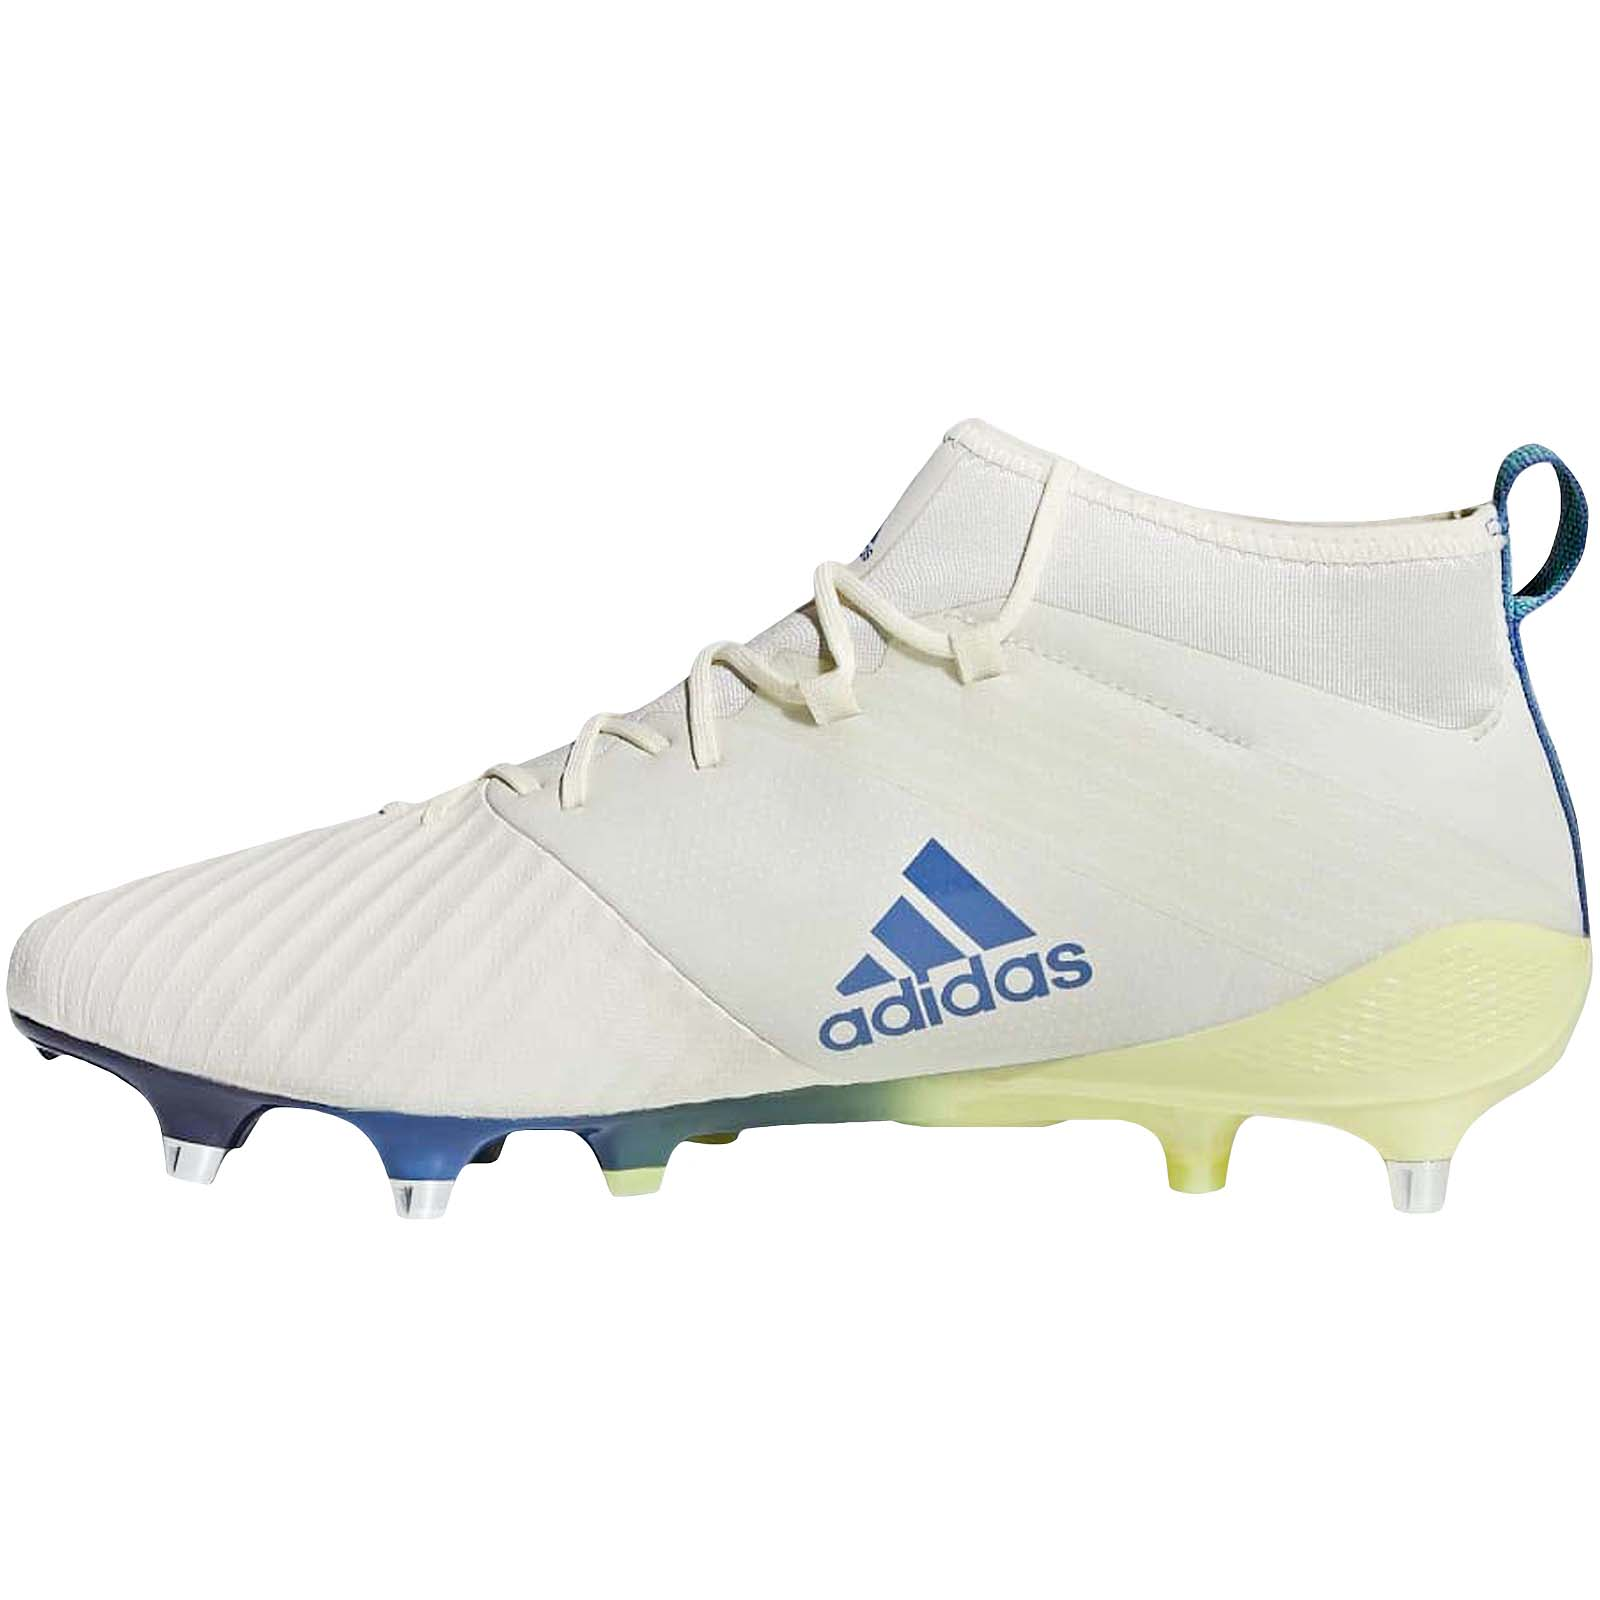 adidas-Performance-Mens-Predator-Flare-SG-Rugby-Shoes-Trainers-Boots thumbnail 10